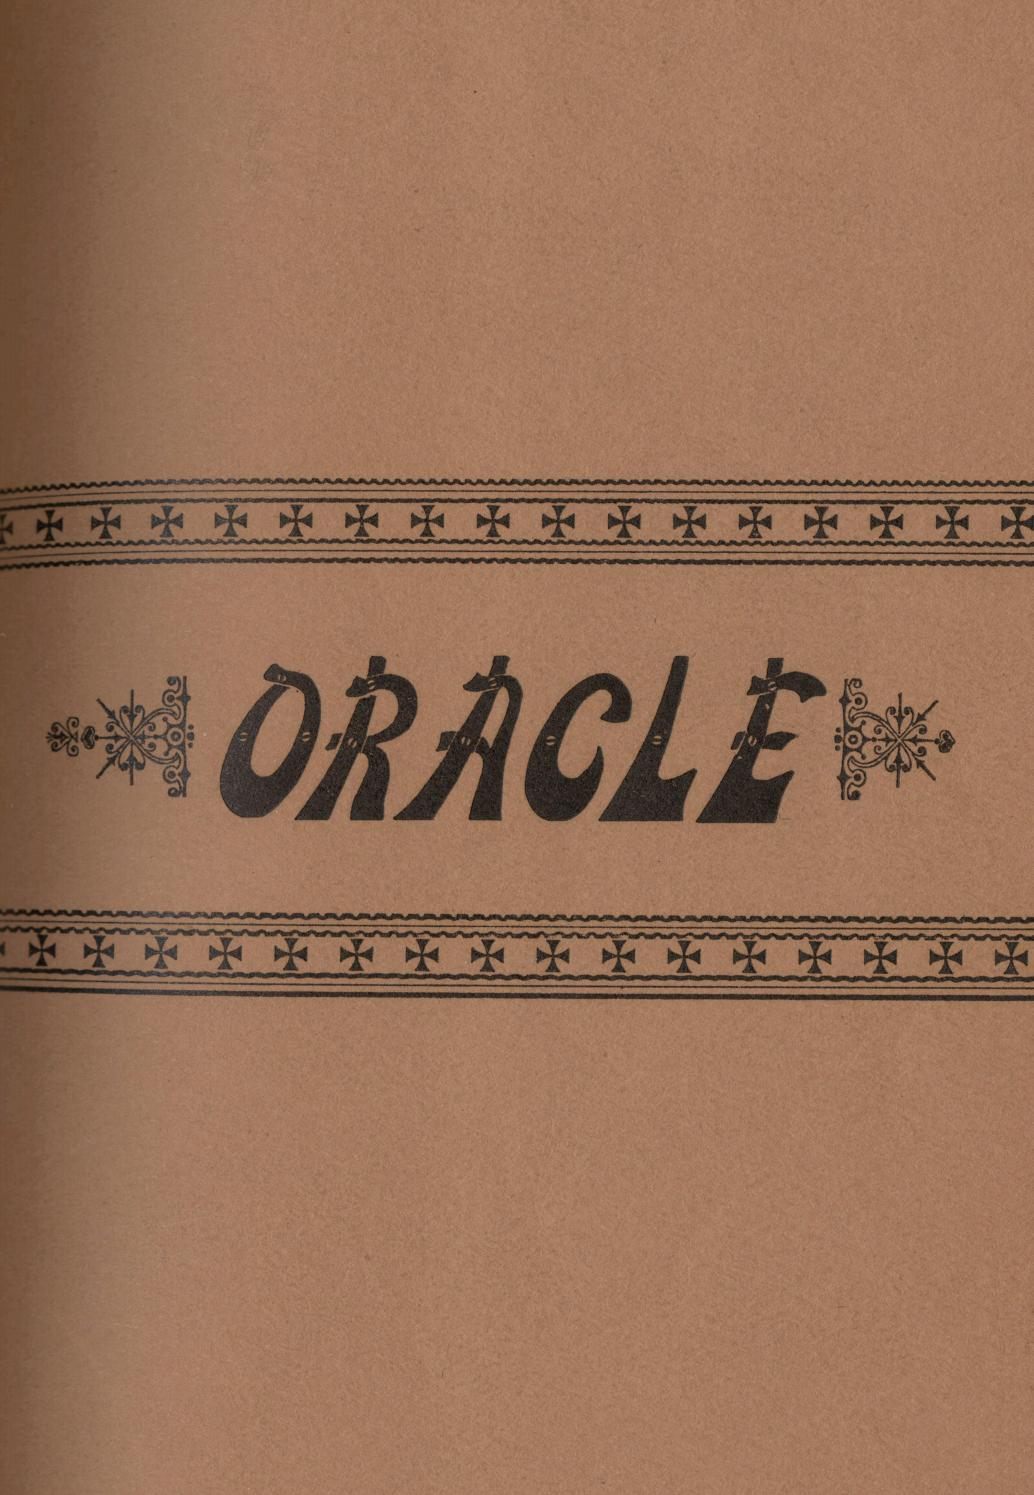 b81a91dcbe0 The Colby Oracle 1882 by Colby College Libraries - issuu